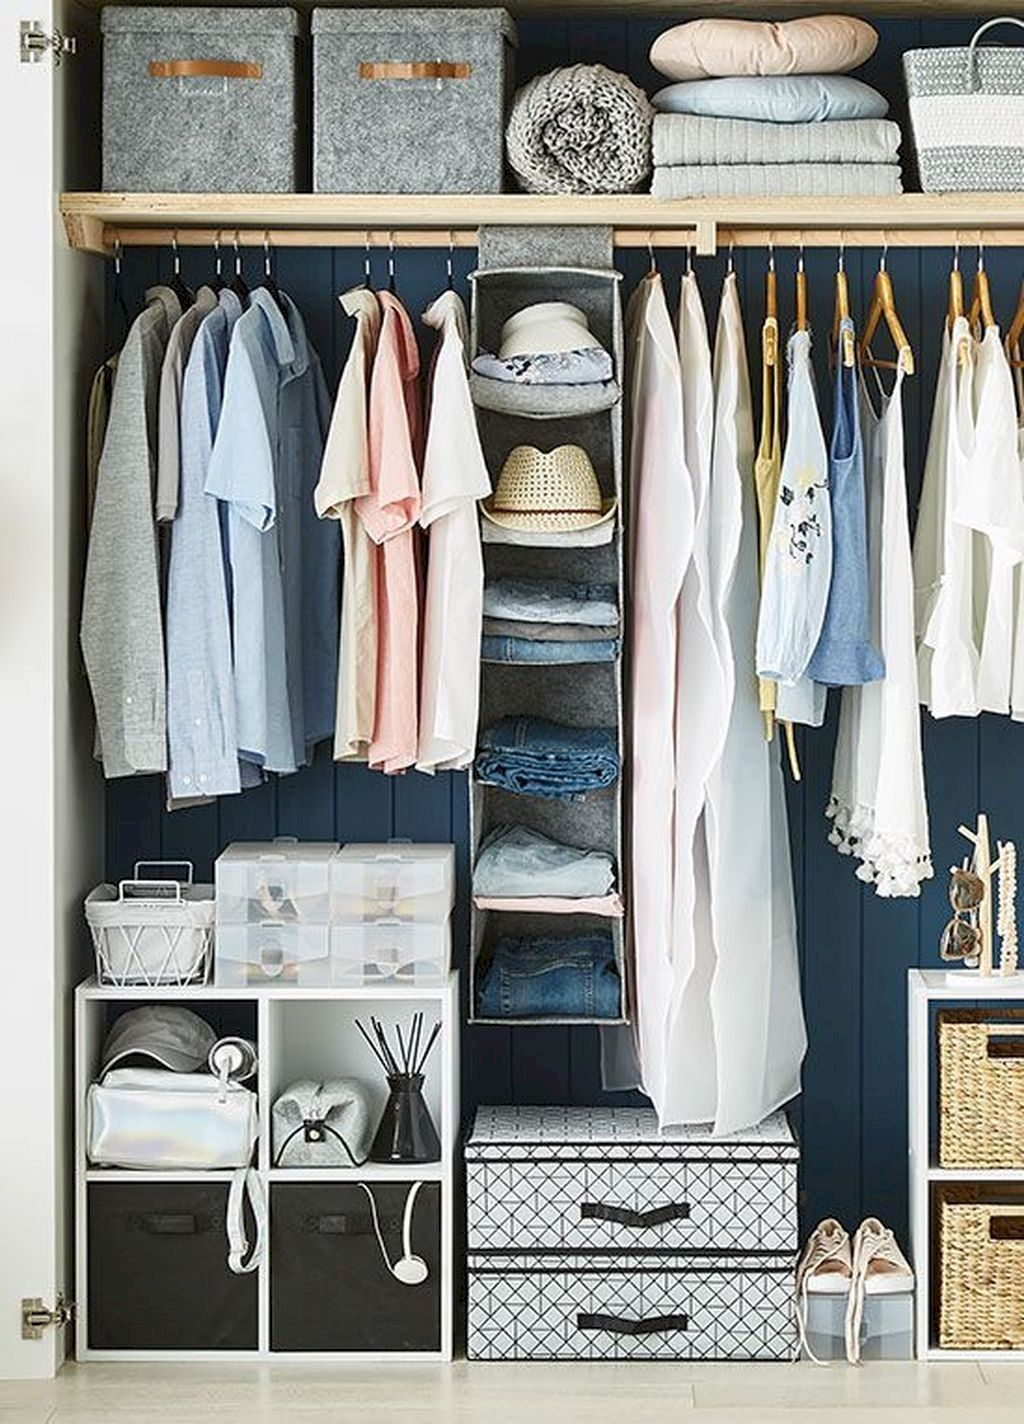 Fantastic Your House Saving Software For Your Clothes Bedroom Organization Closet Minimalist Closet Organization Master Bedroom Closets Organization